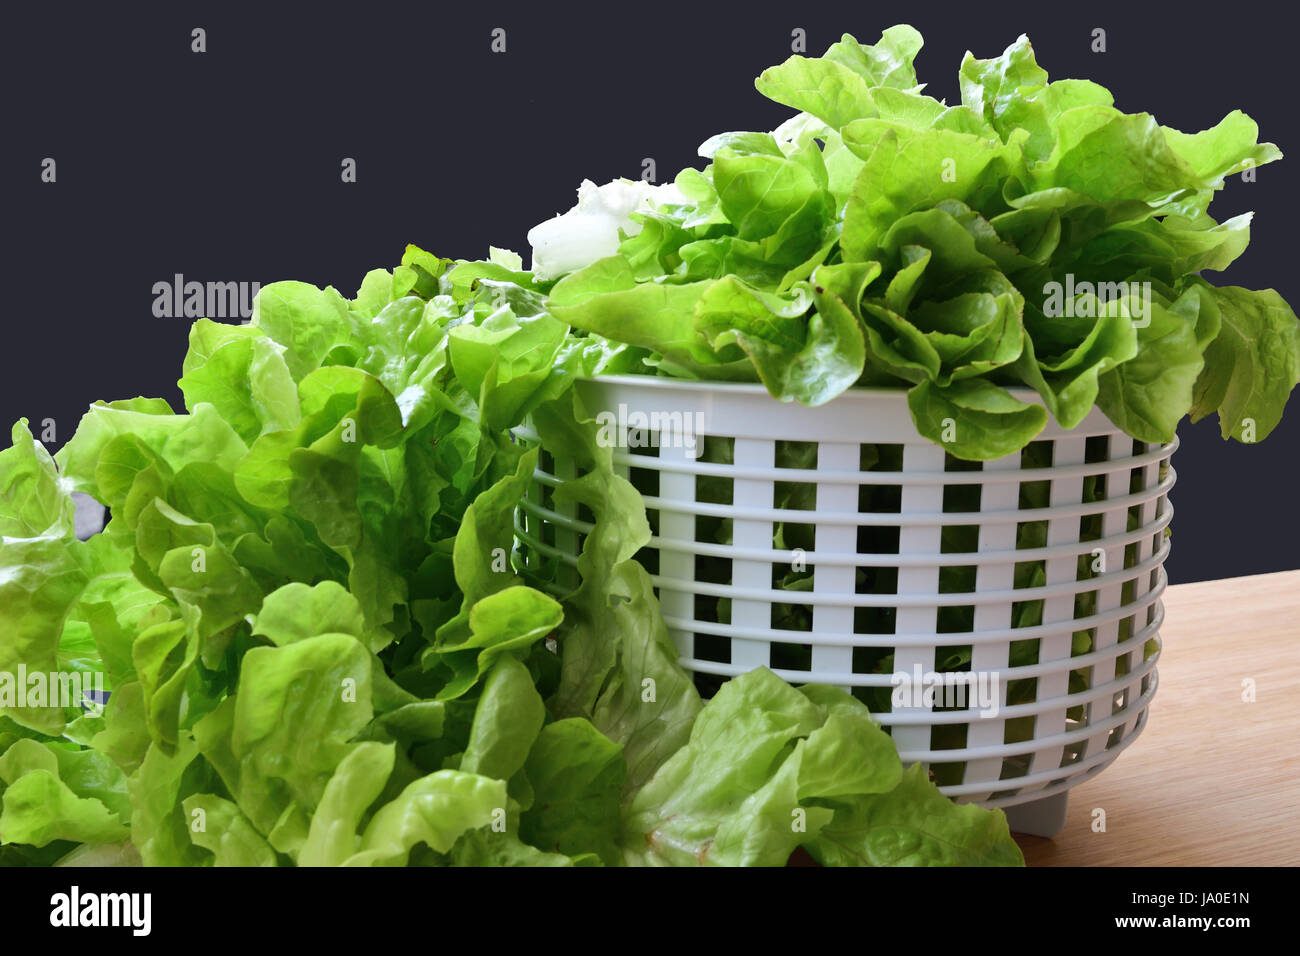 lettuce leaves overflowing white coliander onto cutting board - Stock Image